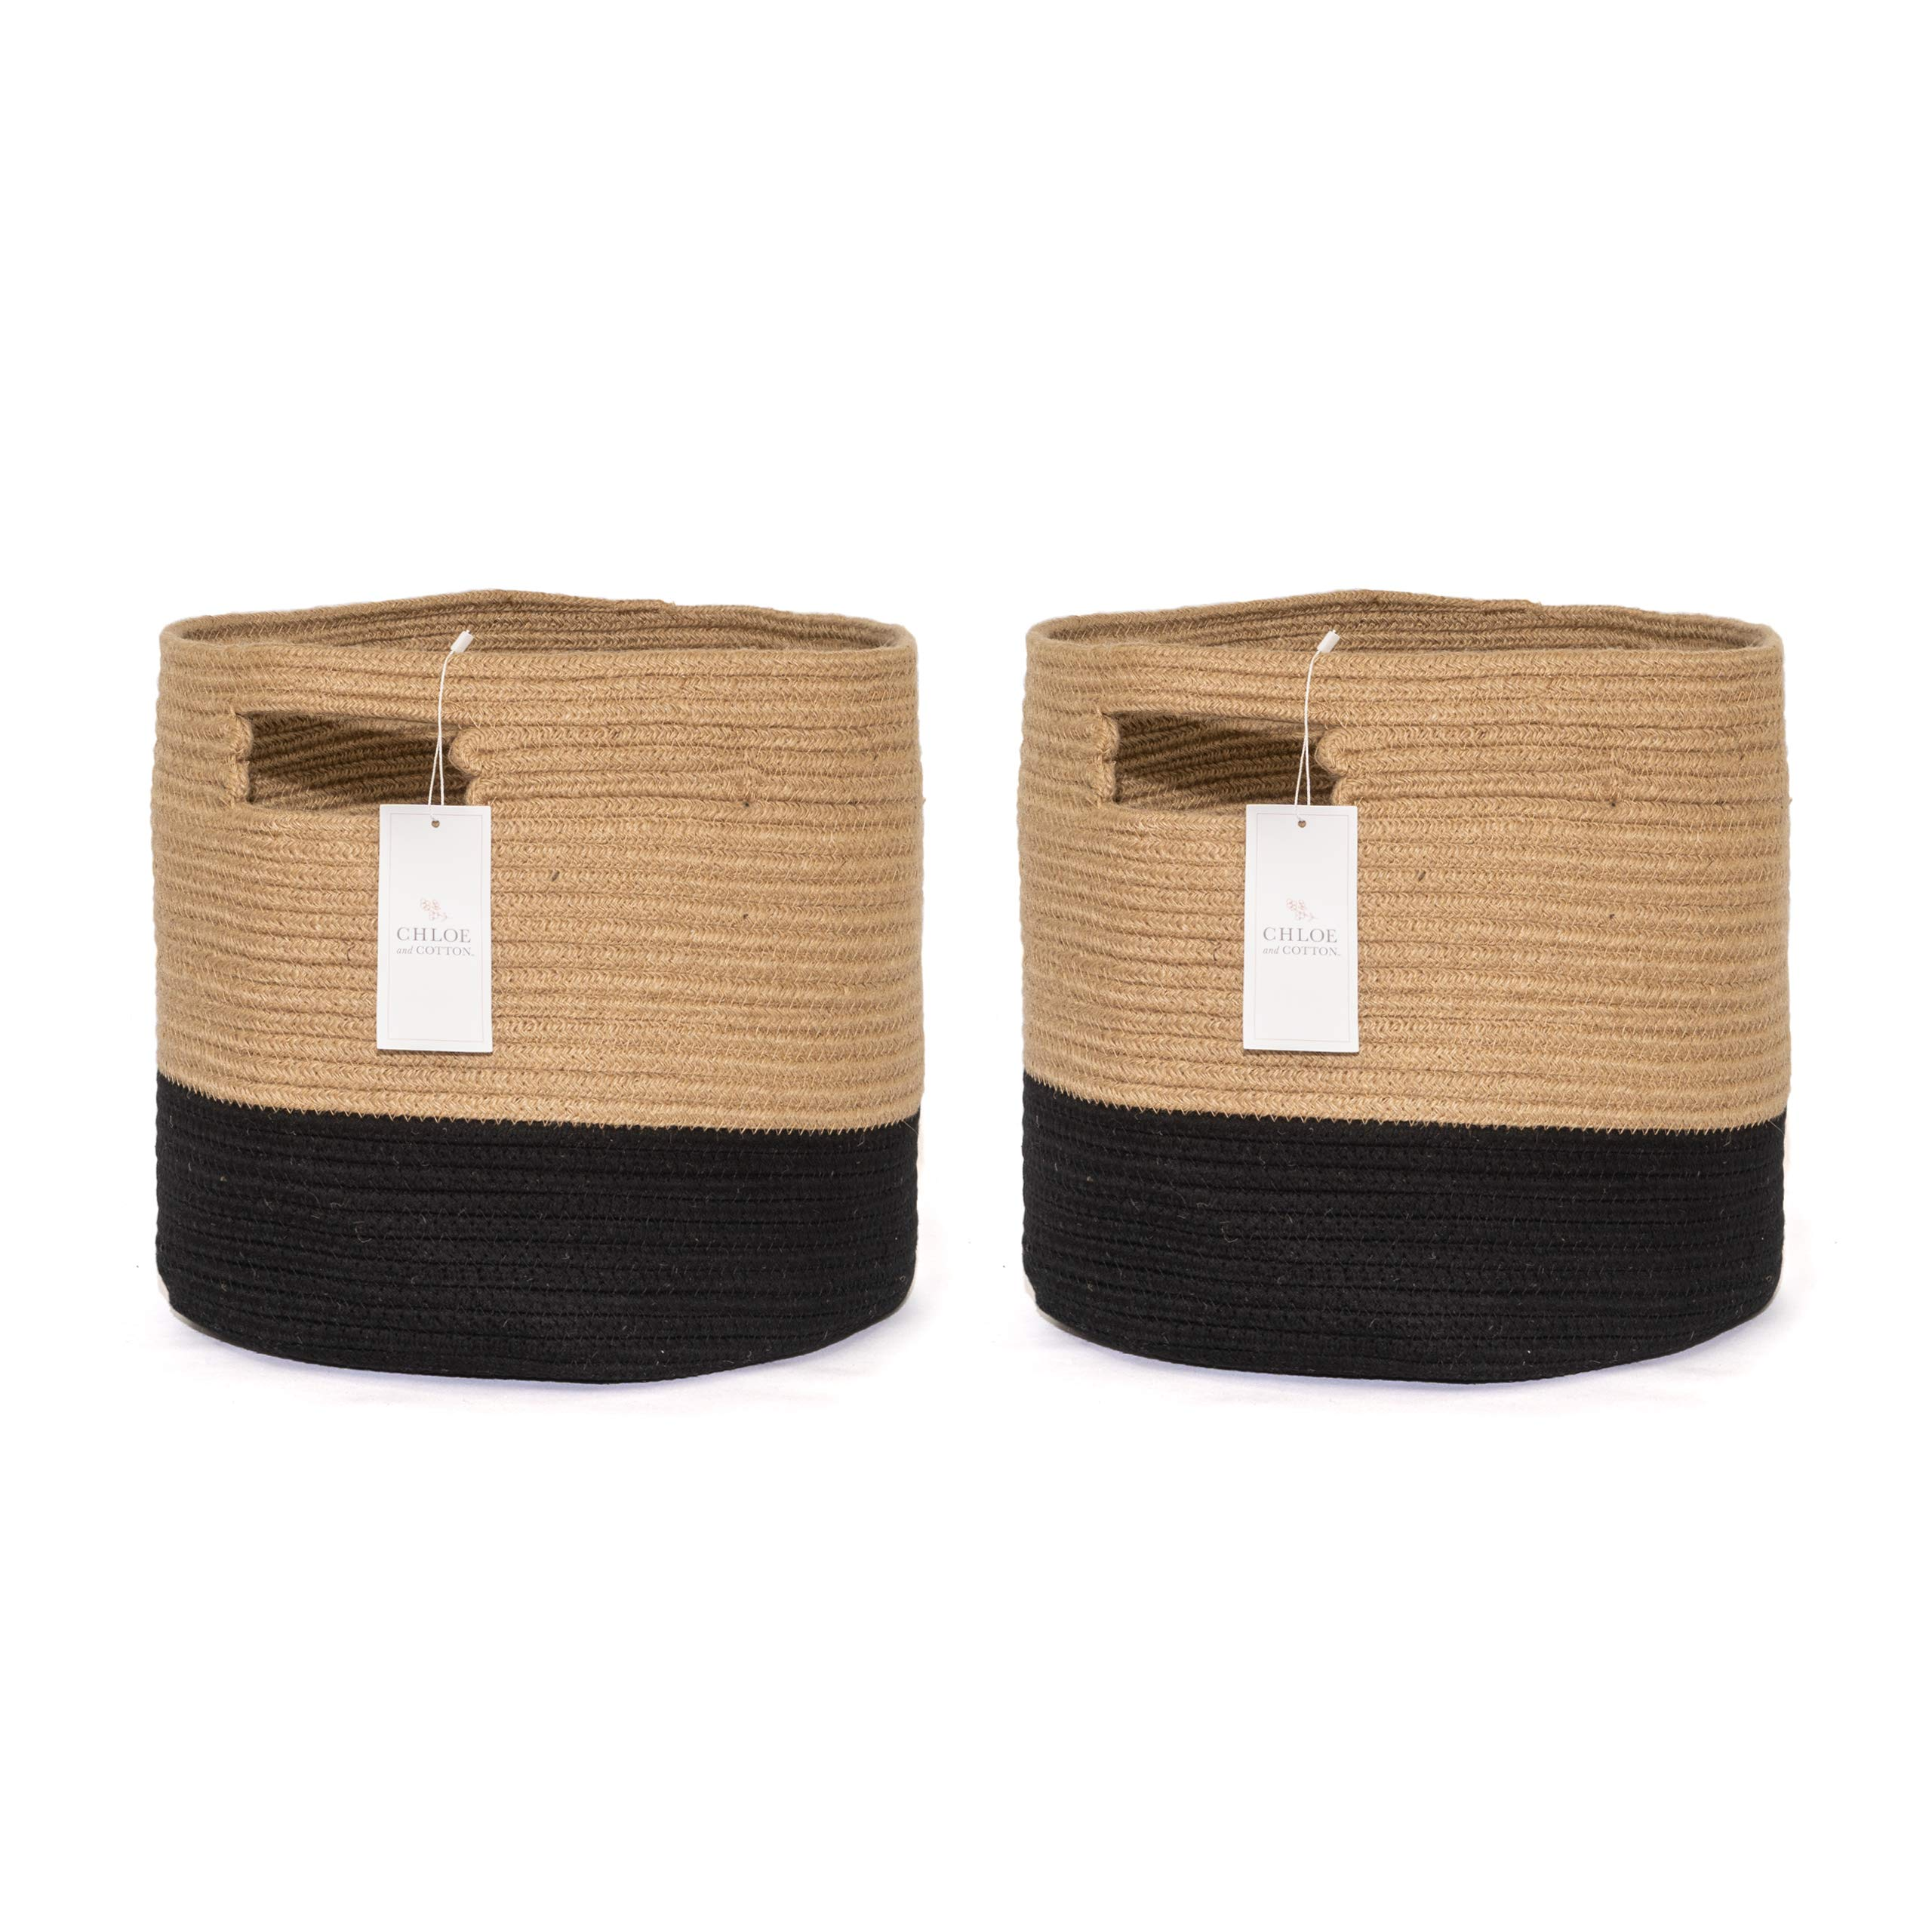 Chloe and Cotton Woven Fabric Cube Storage Baskets Jute Black with Handles | Set of 2 | Cute Decorative Bins Containers Organizers For Cubes, Shelves, Bookcases, Cubbies, Organizing Containers by Chloe and Cotton